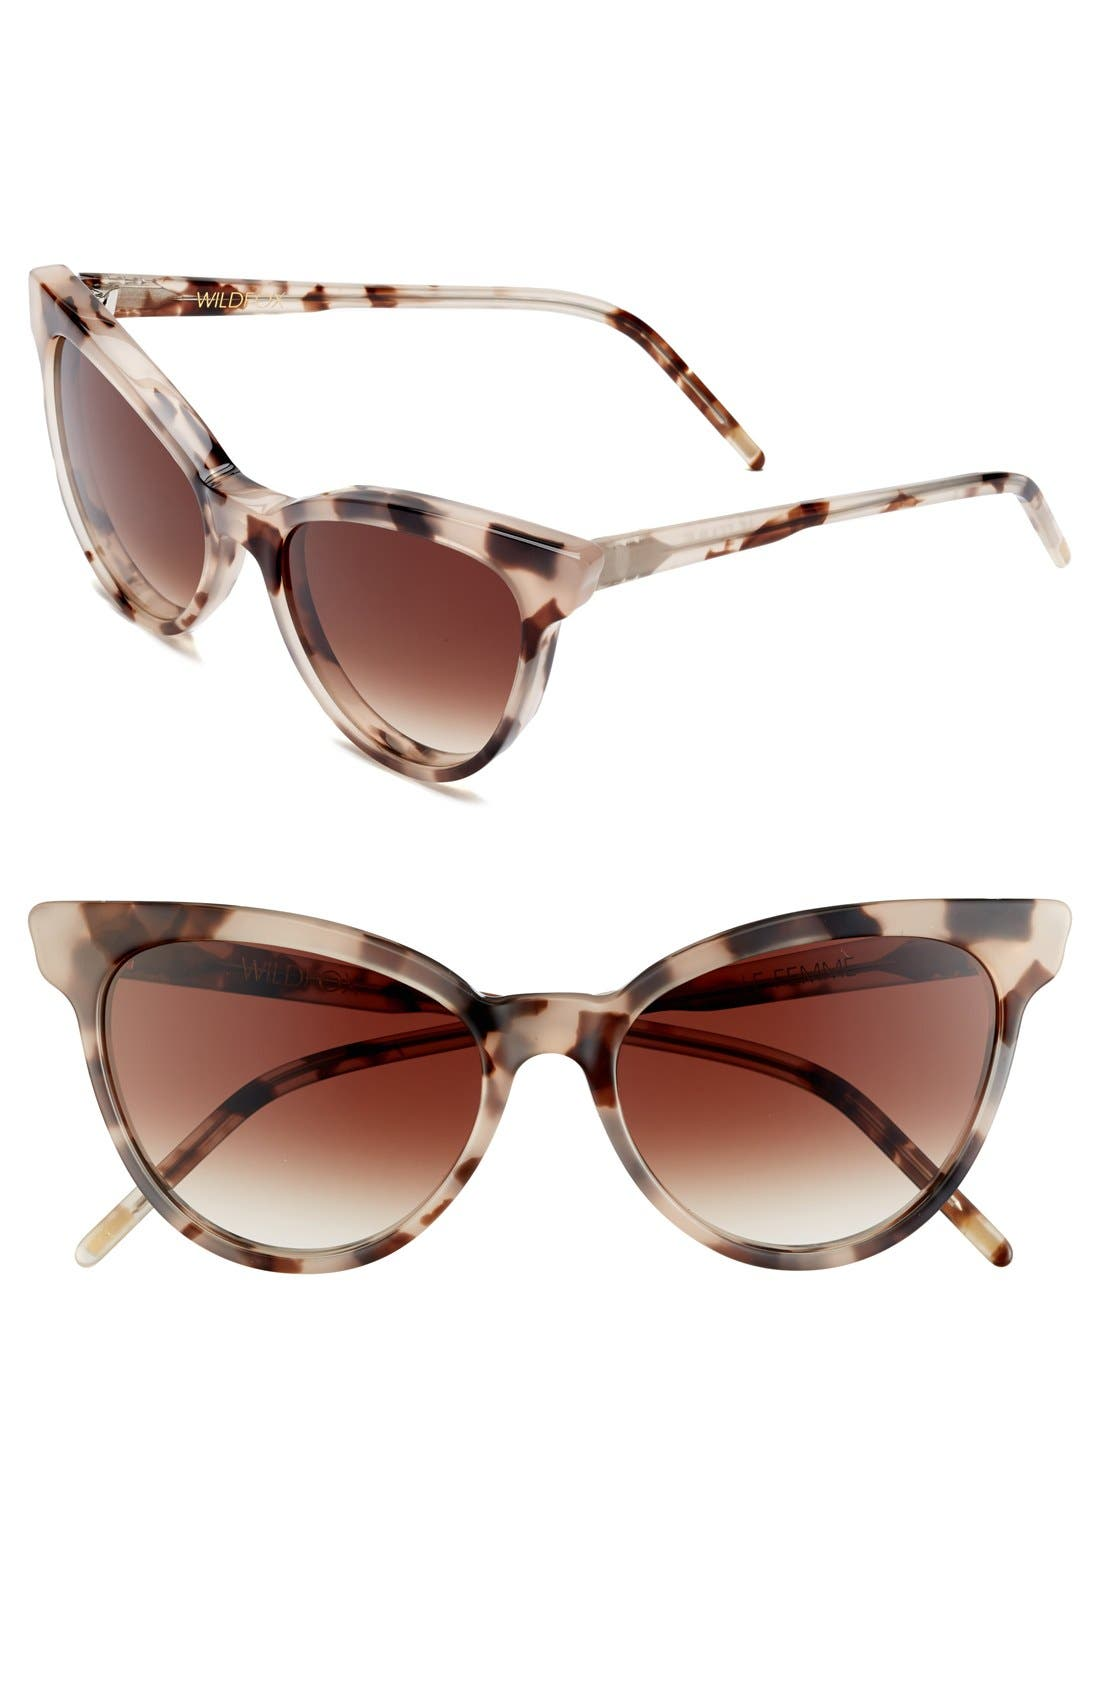 Main Image - Wildfox 'La Femme' 55mm Sunglasses